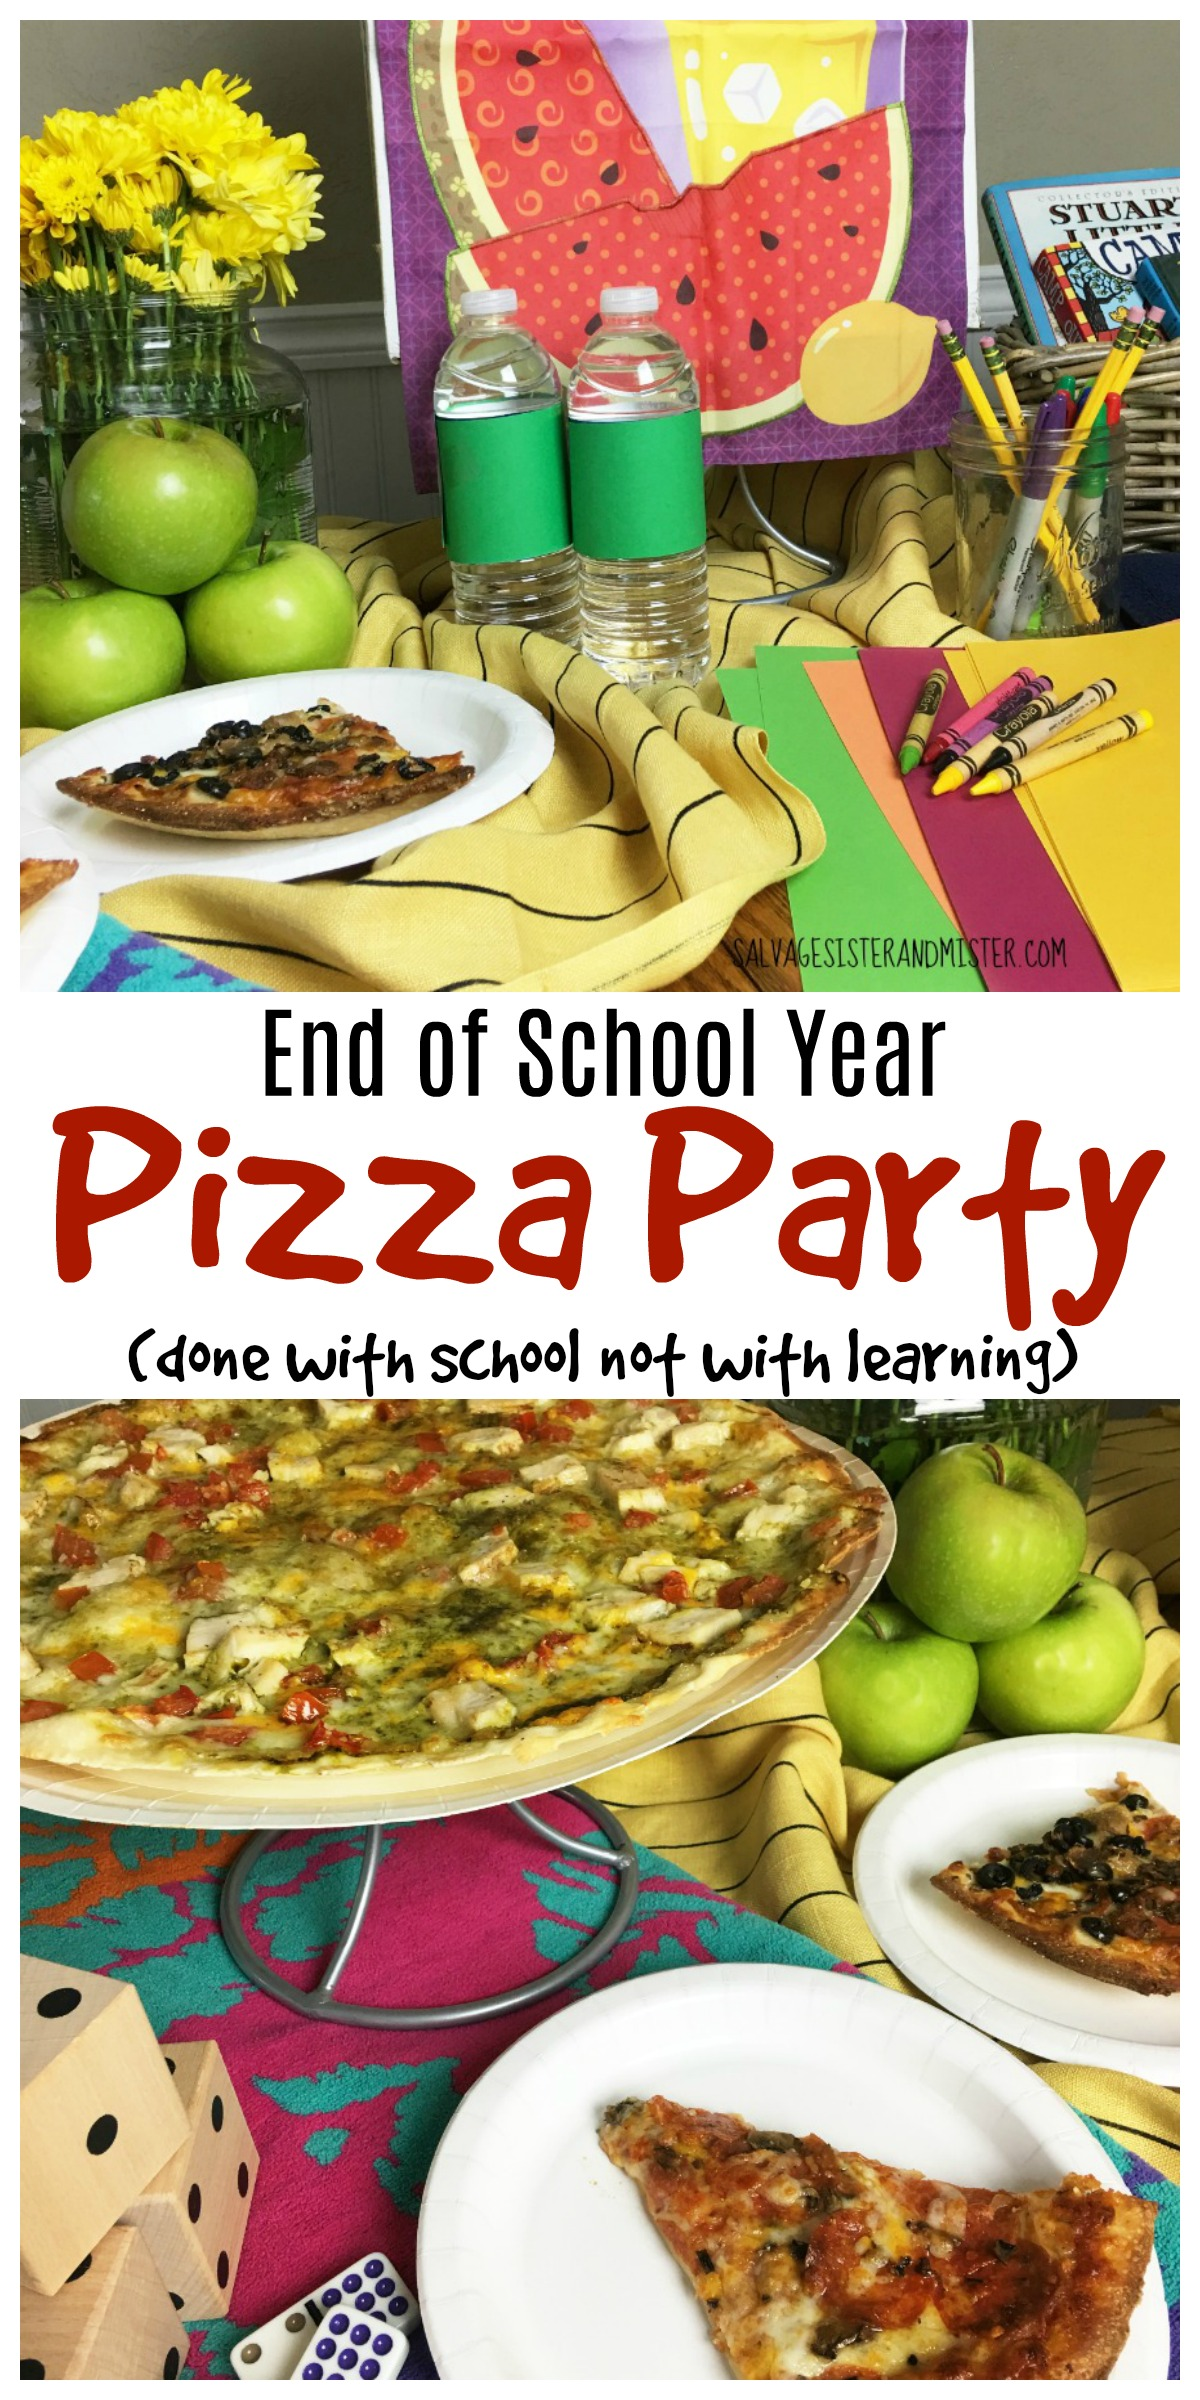 Kids might be done with school but that doesn't mean learning has to stop.  Done wtih school not with learning end of the school year pizza party is to encourage fun learning activities over the summer to keep the learning going.  Gather art supplies, books, and games that are fun but will foster their learning when they aren't in the classroom.  A great way to celebrate school summer break.  Kids activities to fight boredom.  Pick up some yummy pizza from Papa Murphys while your at it for a sumple summer dinner.  On Tuesdays' their large pizza's are just $10.  What a fun way to celebrate summer.  #dealsat425 #ad @papamurphys